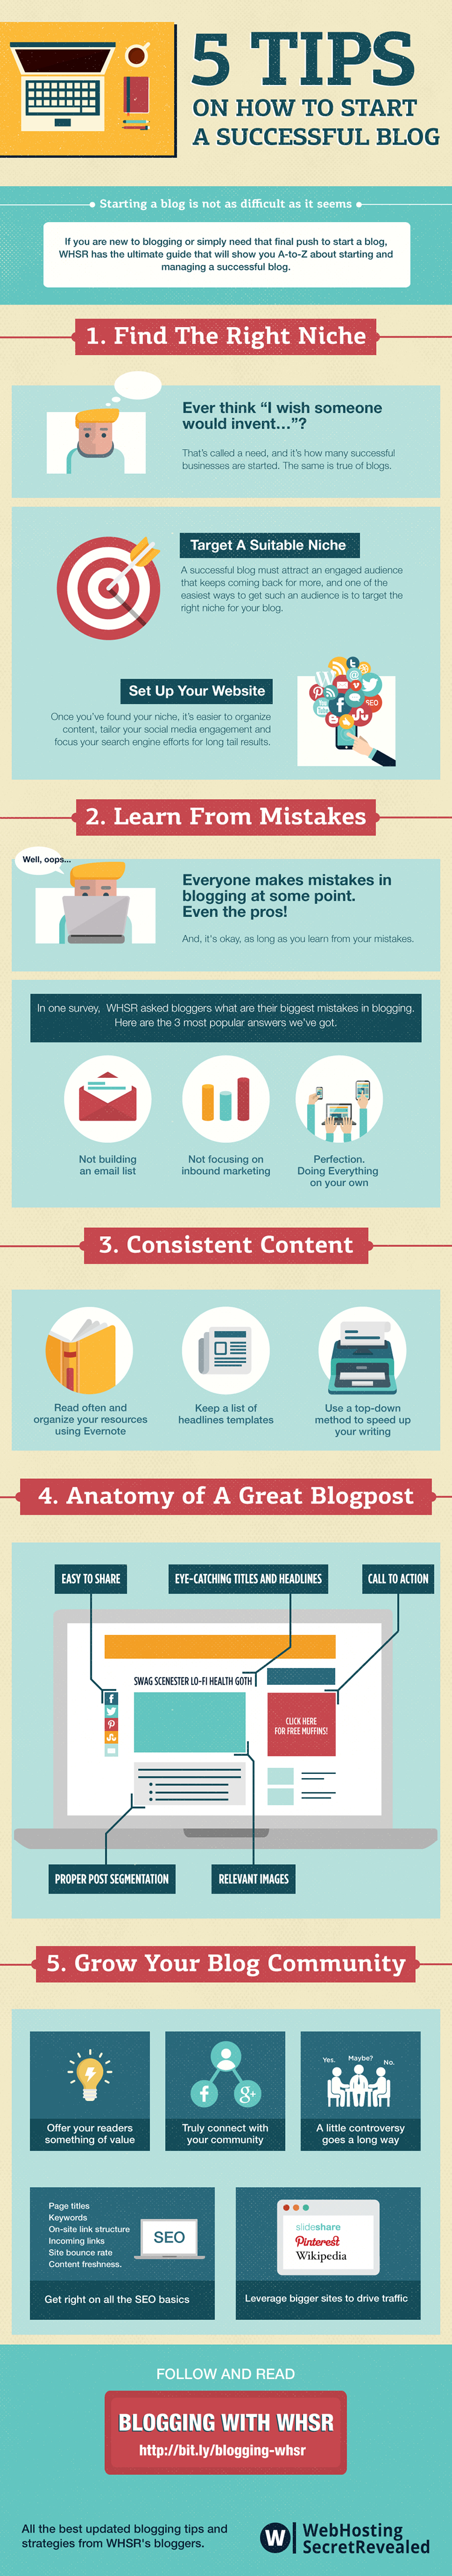 infographic successful blog